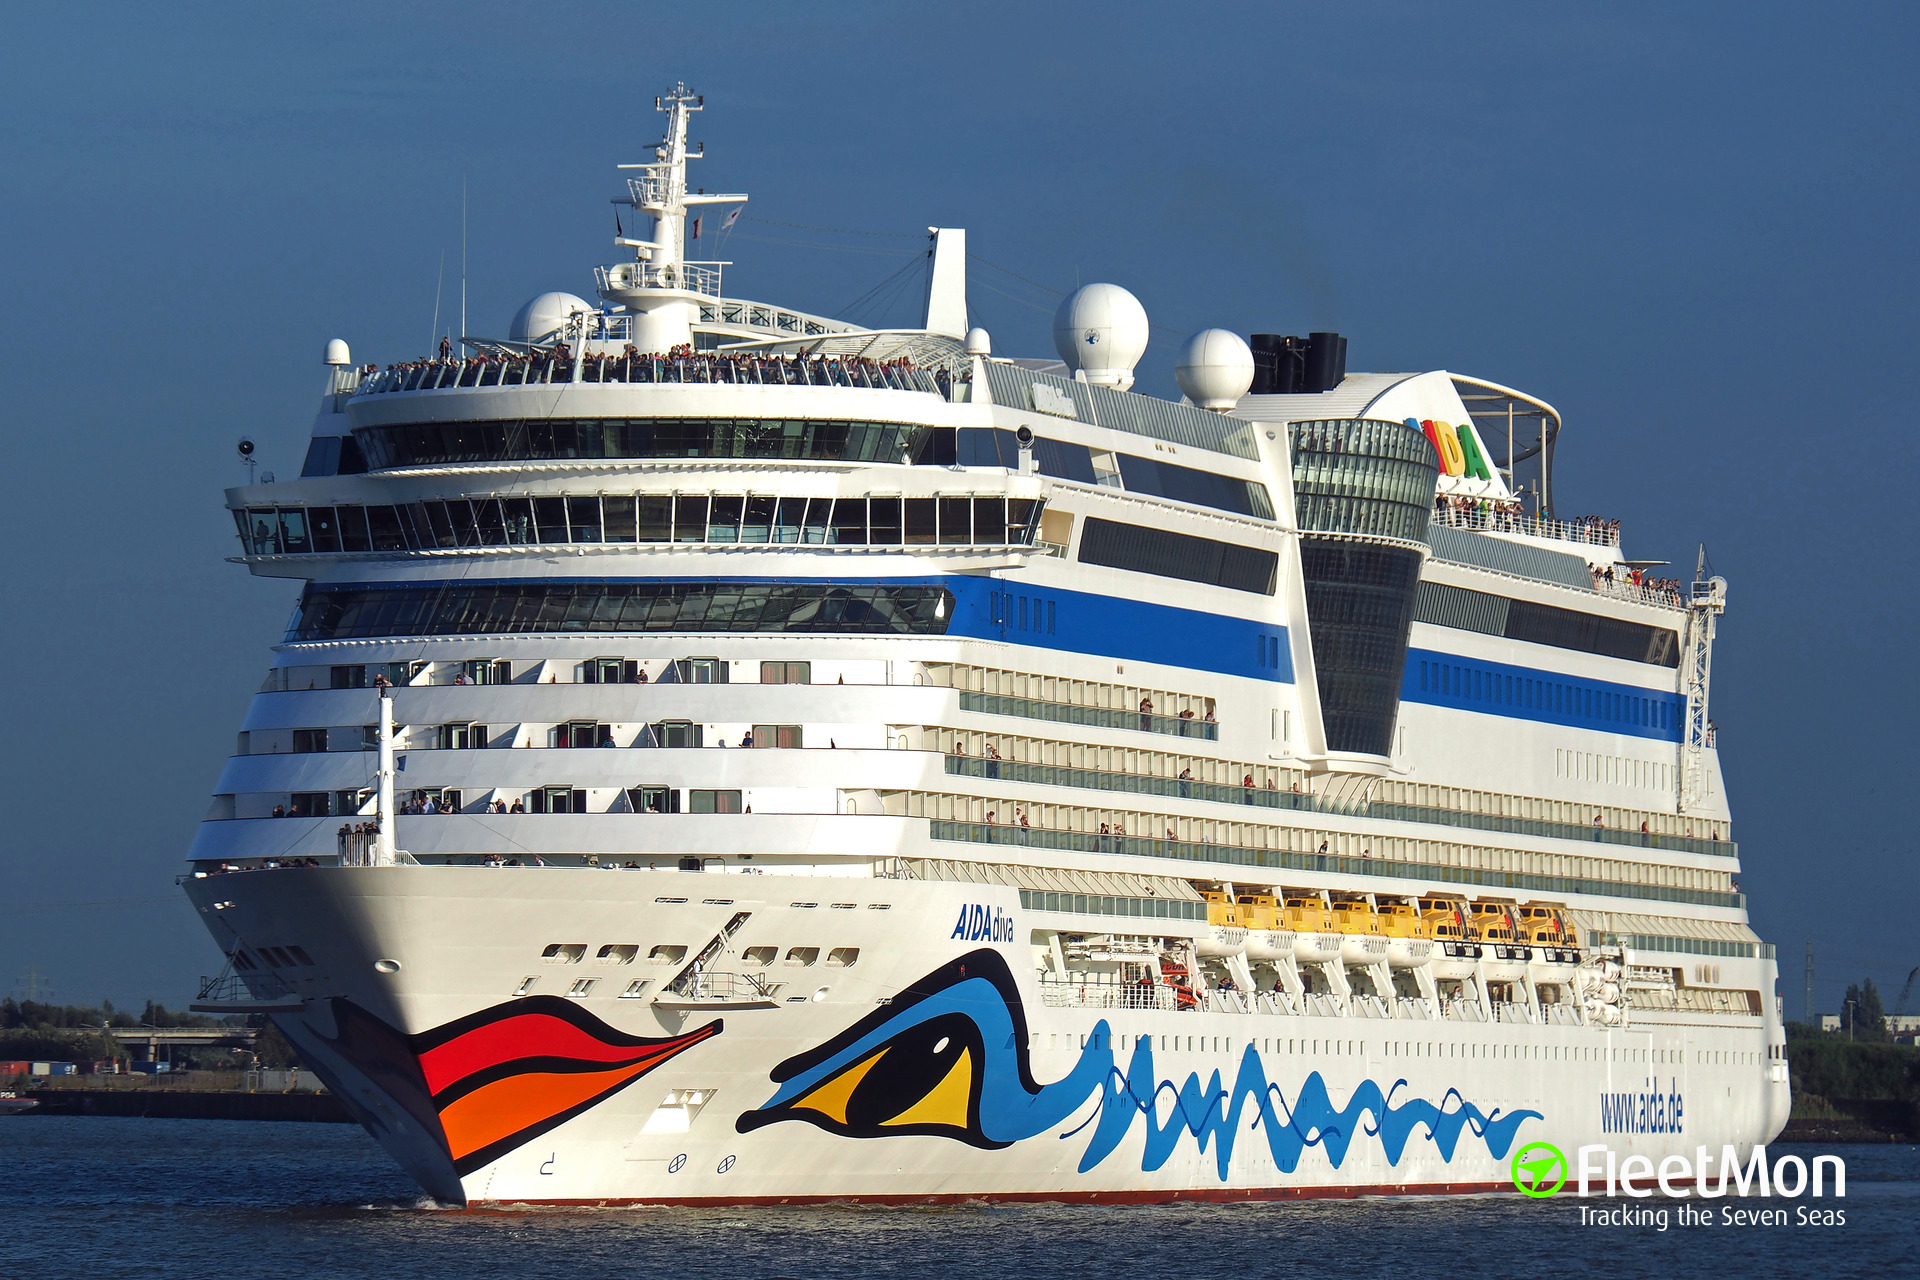 Cruise liner AIDAdiva hit by rocket debris, Israel